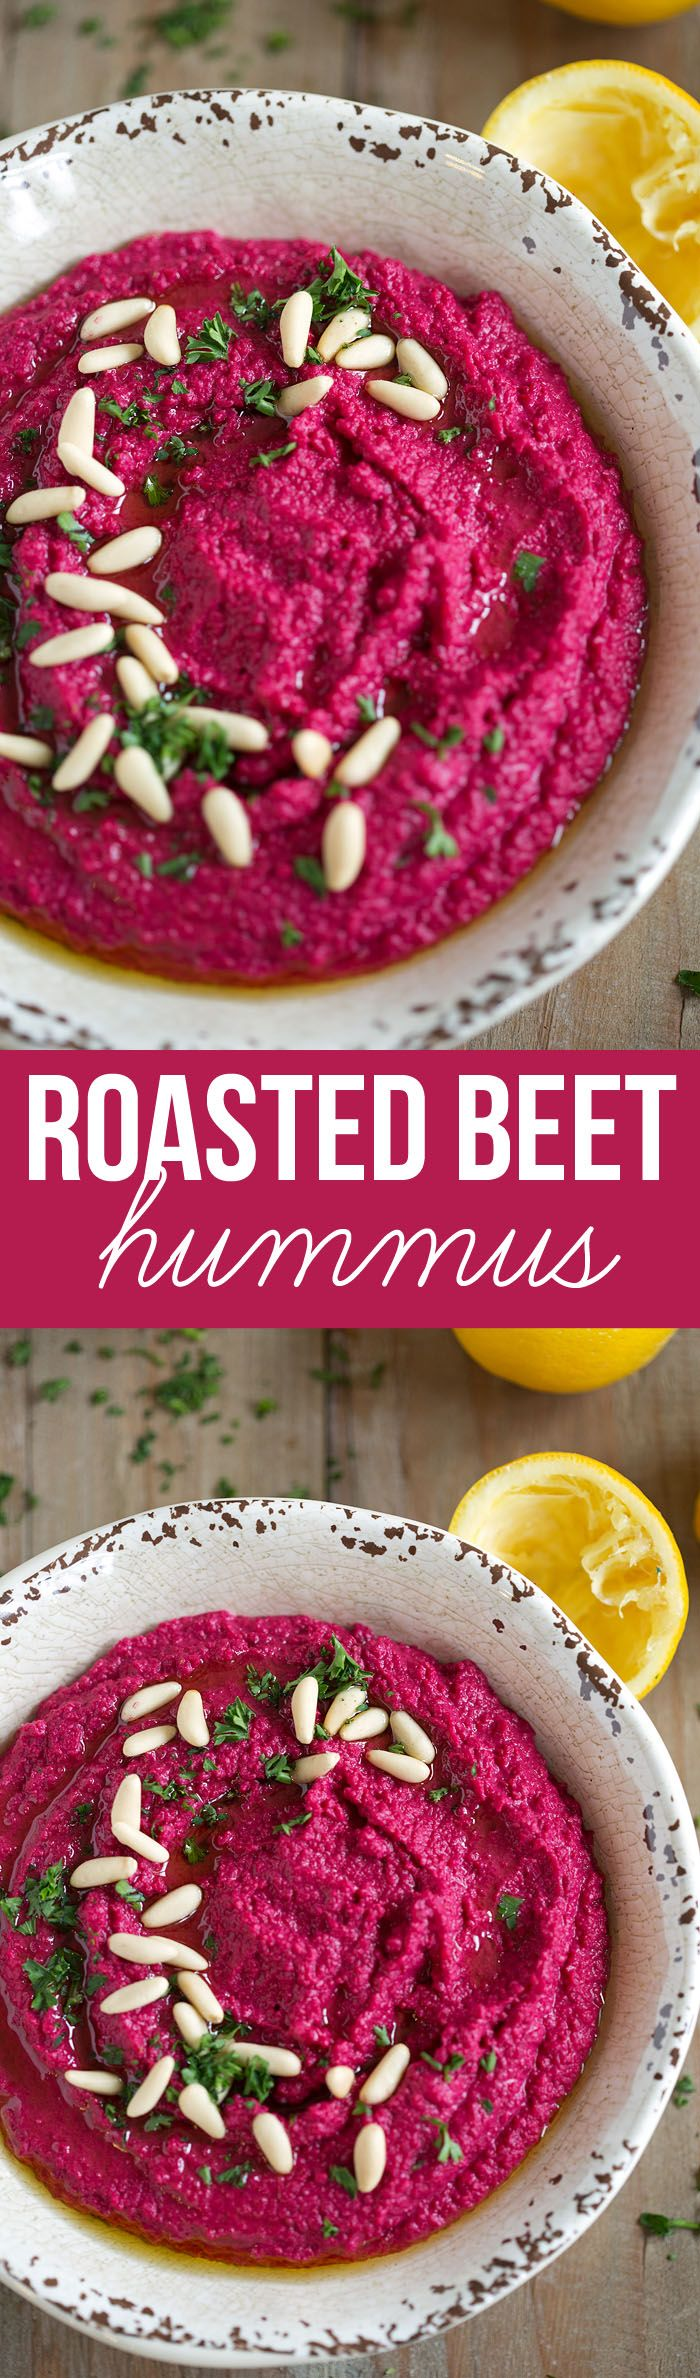 This Creamy Roasted Beet Hummus is gluten-free, dairy-free, vegan and a FAVORITE in our house!  eat-yourself-skinny.com